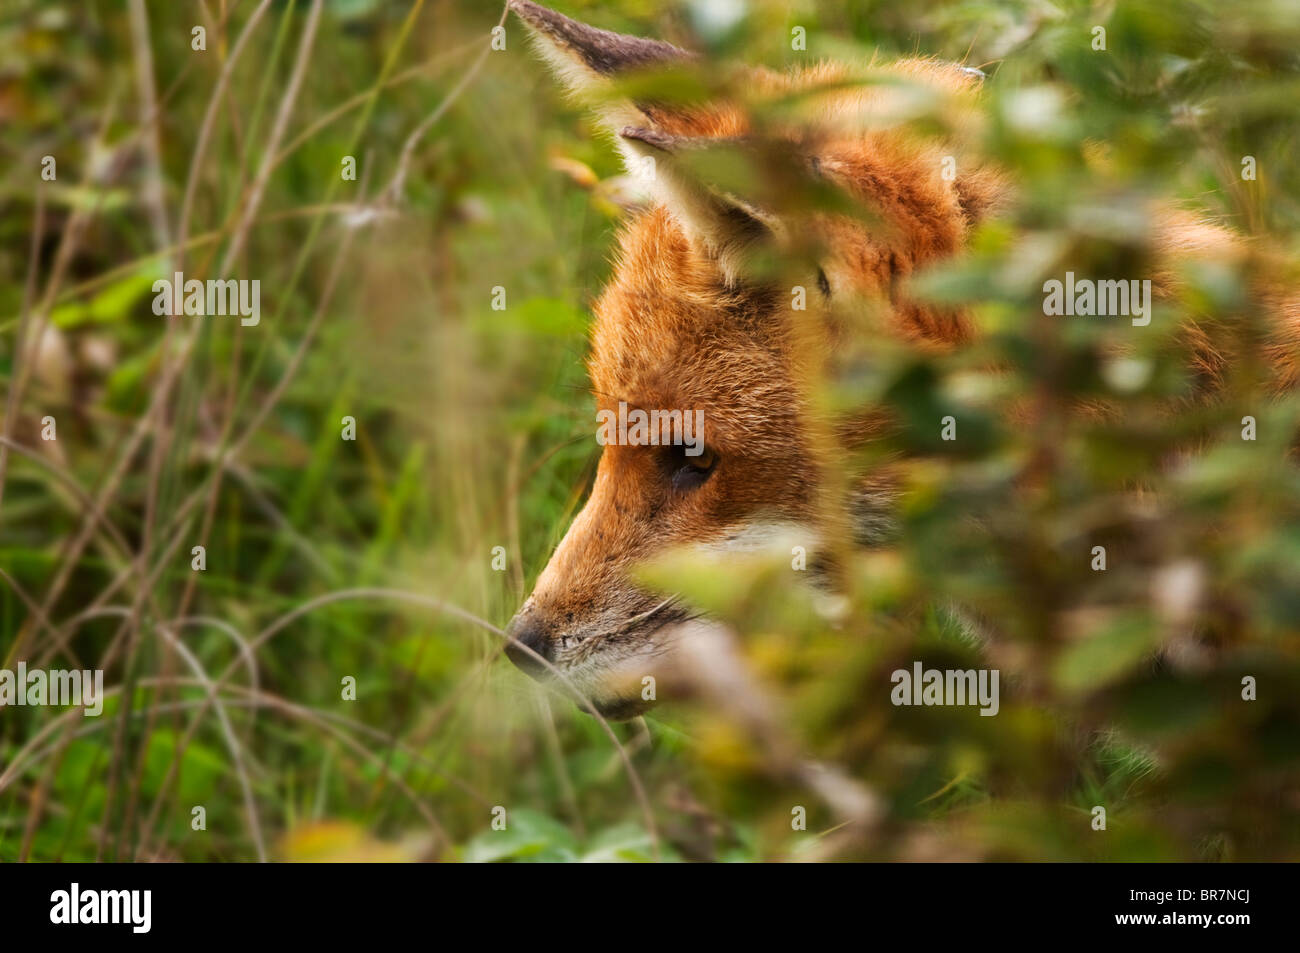 Well grown Red Fox cub in deep cover in Warwickshire countryside Stock Photo